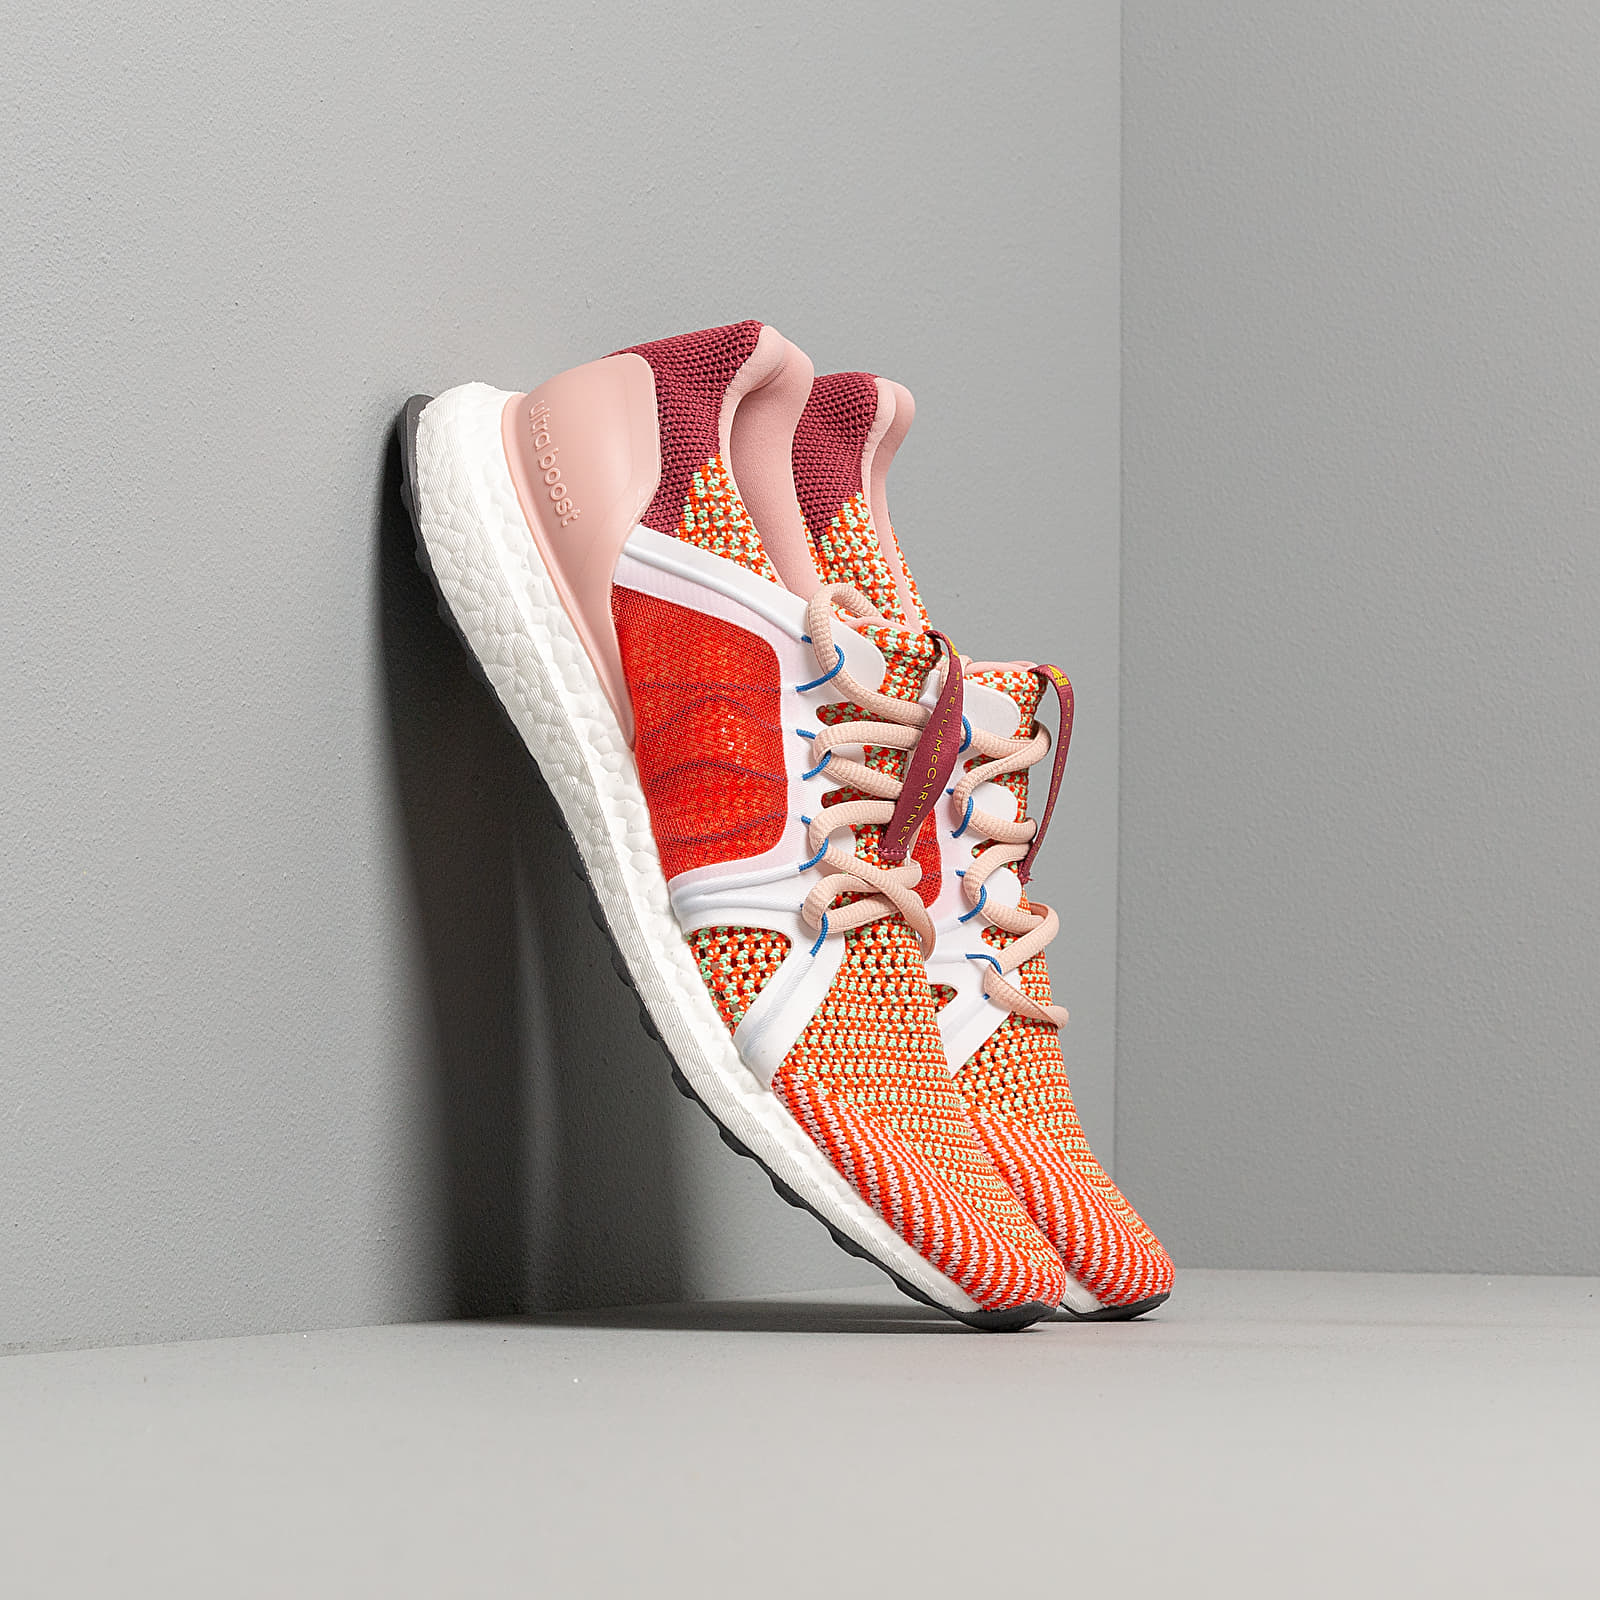 Women's shoes adidas x Stella McCartney UltraBOOST Legend Red/ Active Orange/ Ftw White